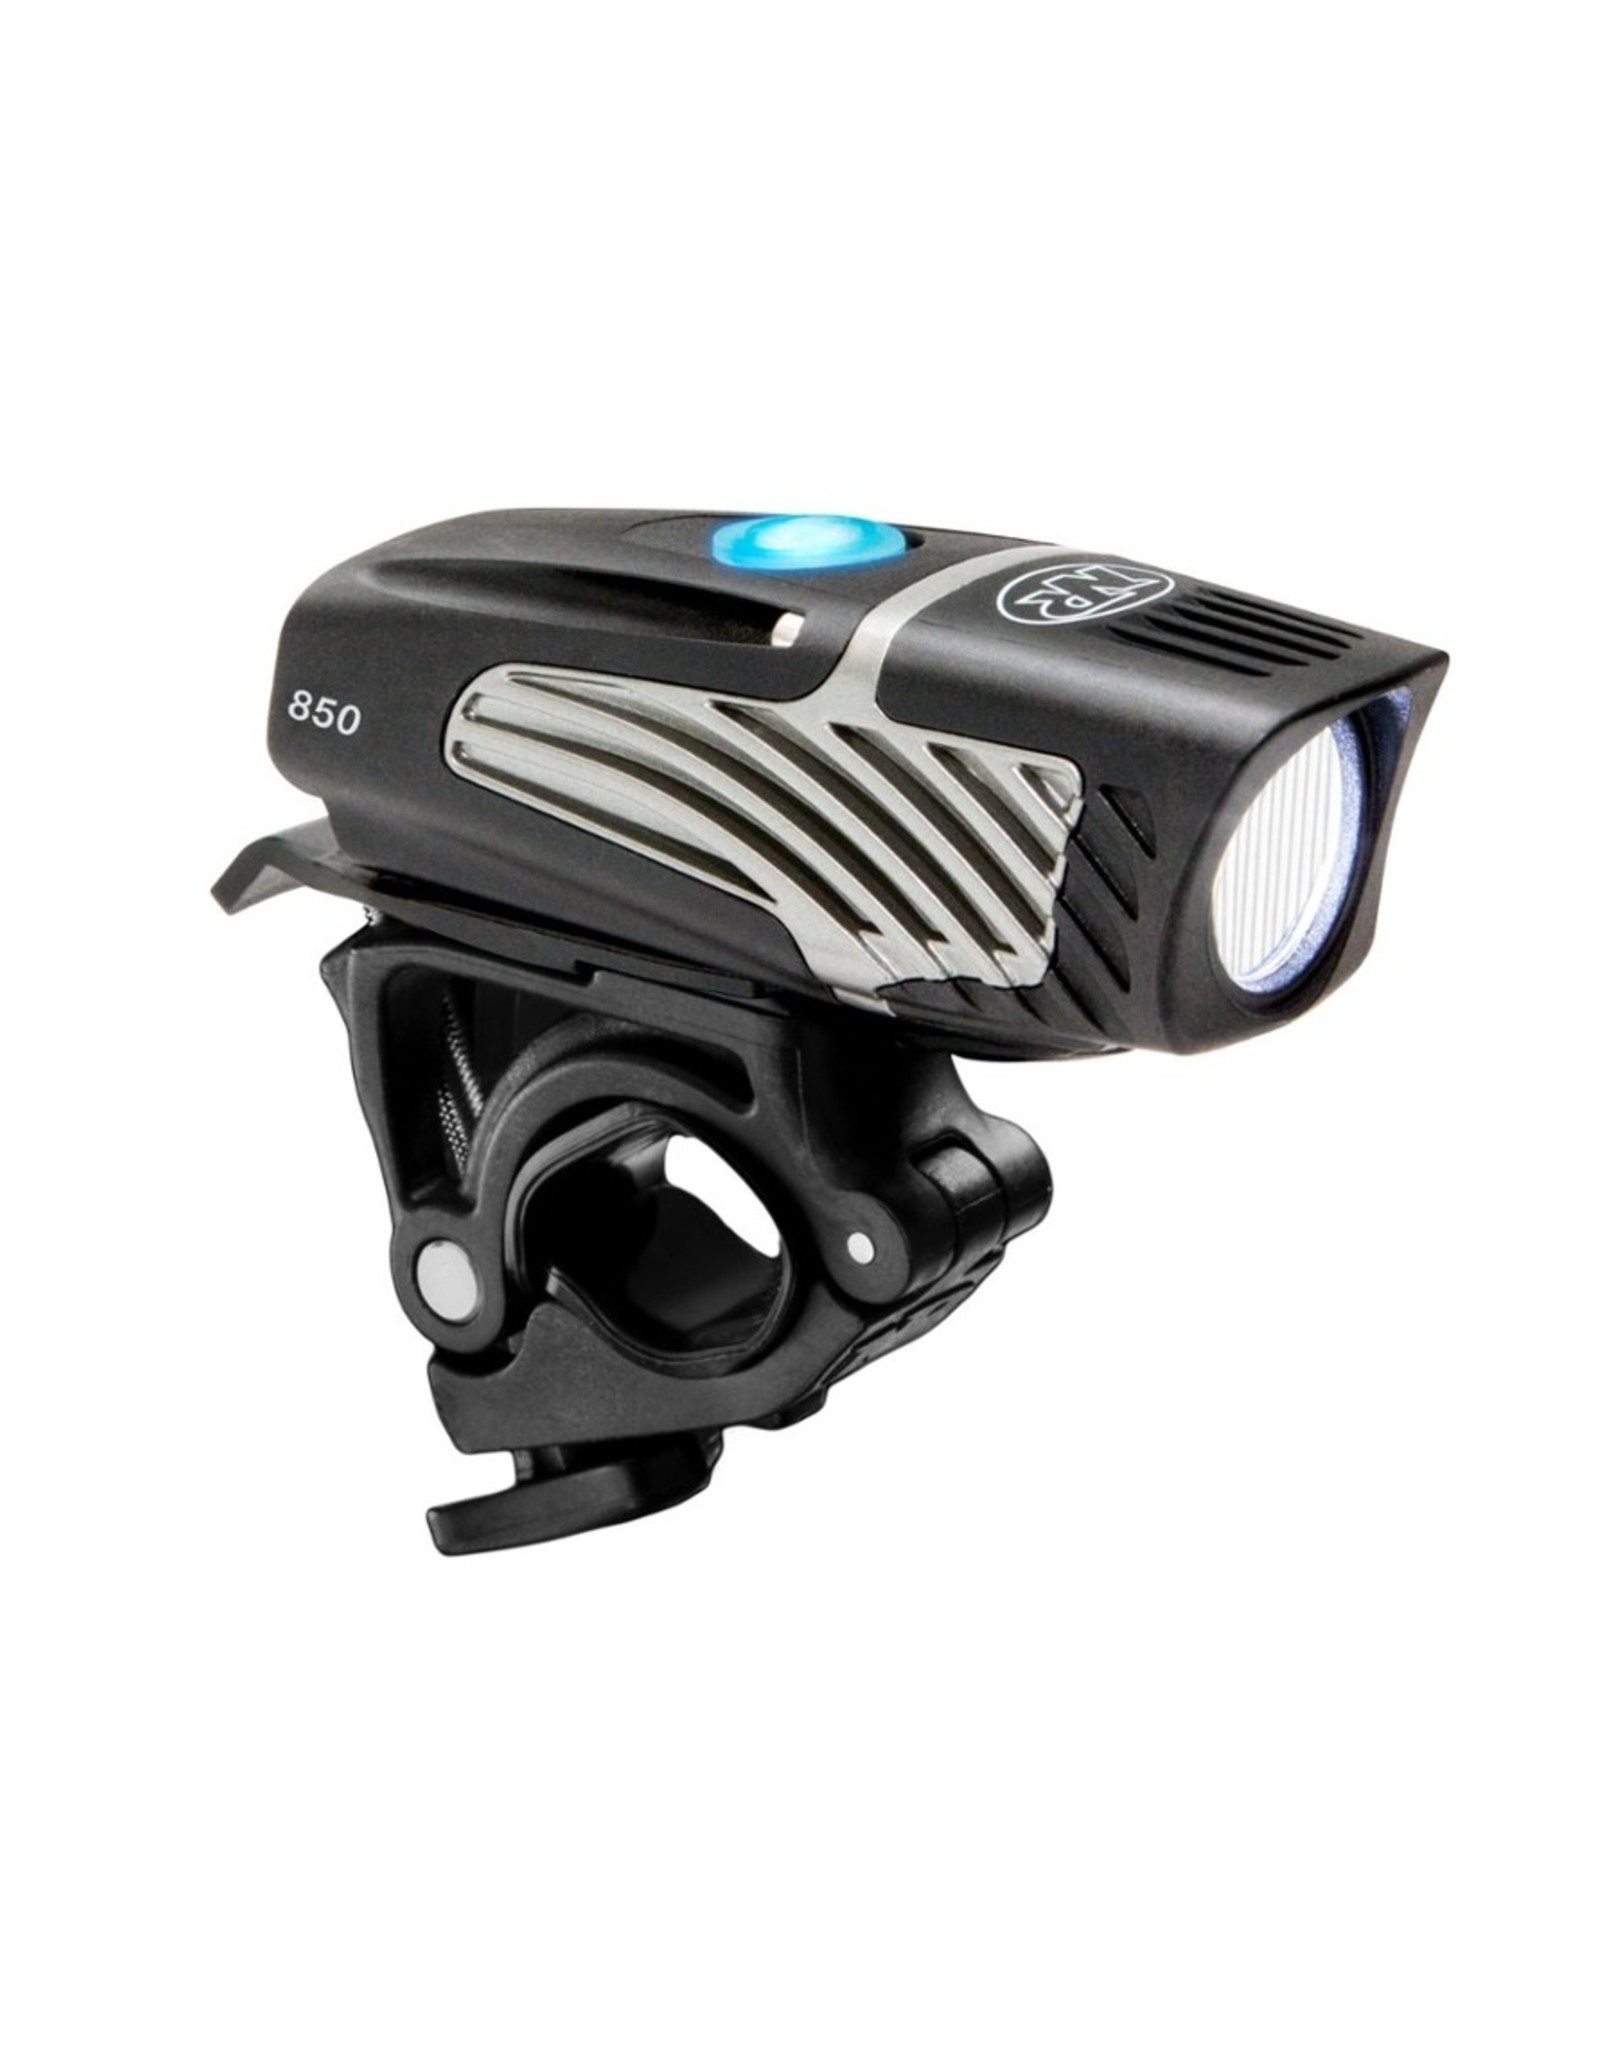 Lights - Front - NiteRider Lumina Micro 850